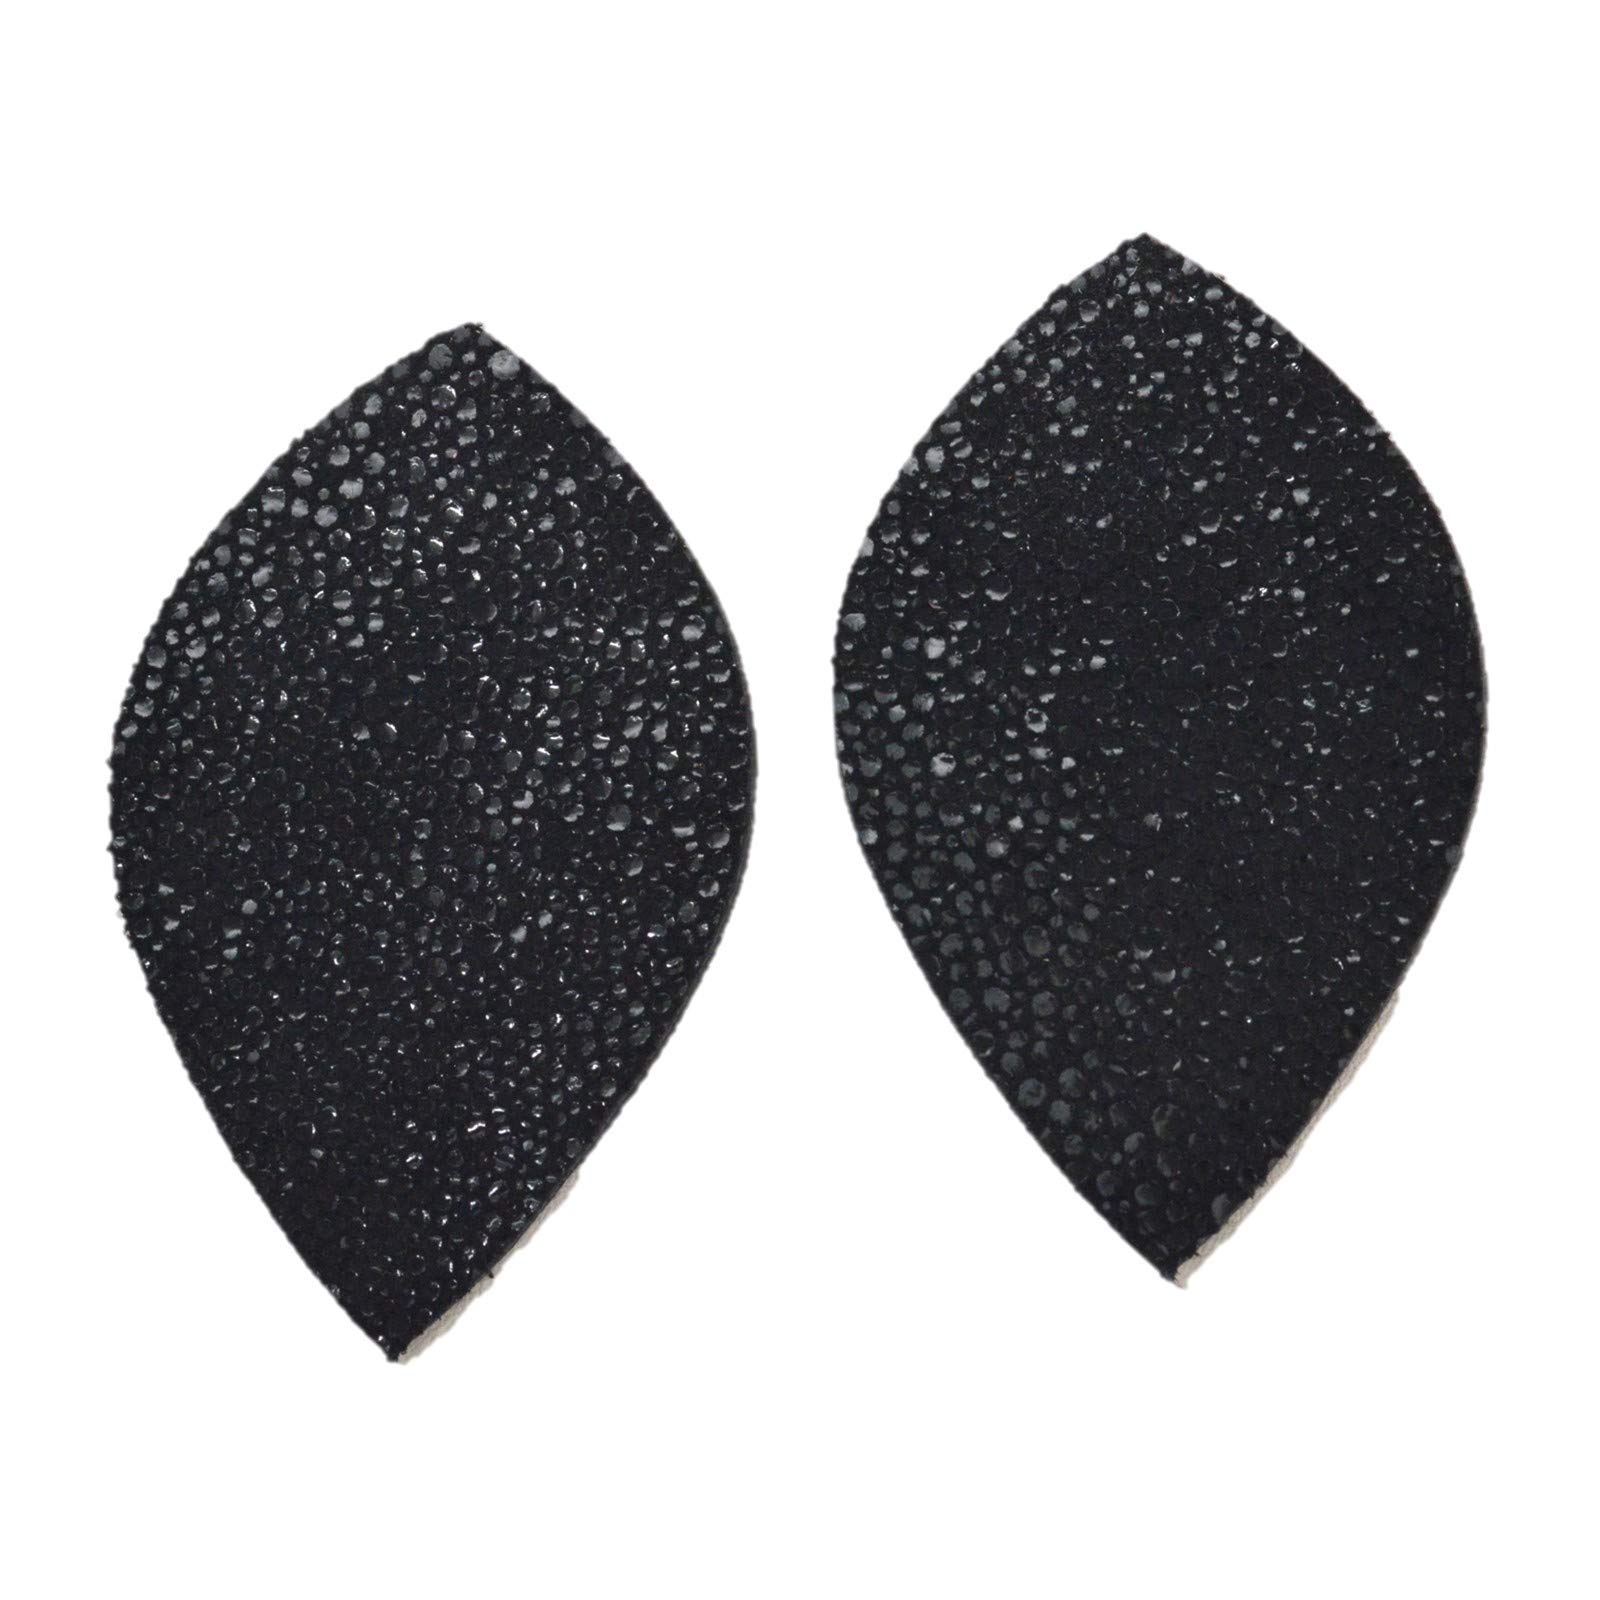 "Leather Earrings Teardrop Large Die Cut 12pk /""Fashionista/"" Black Stingray DIY"